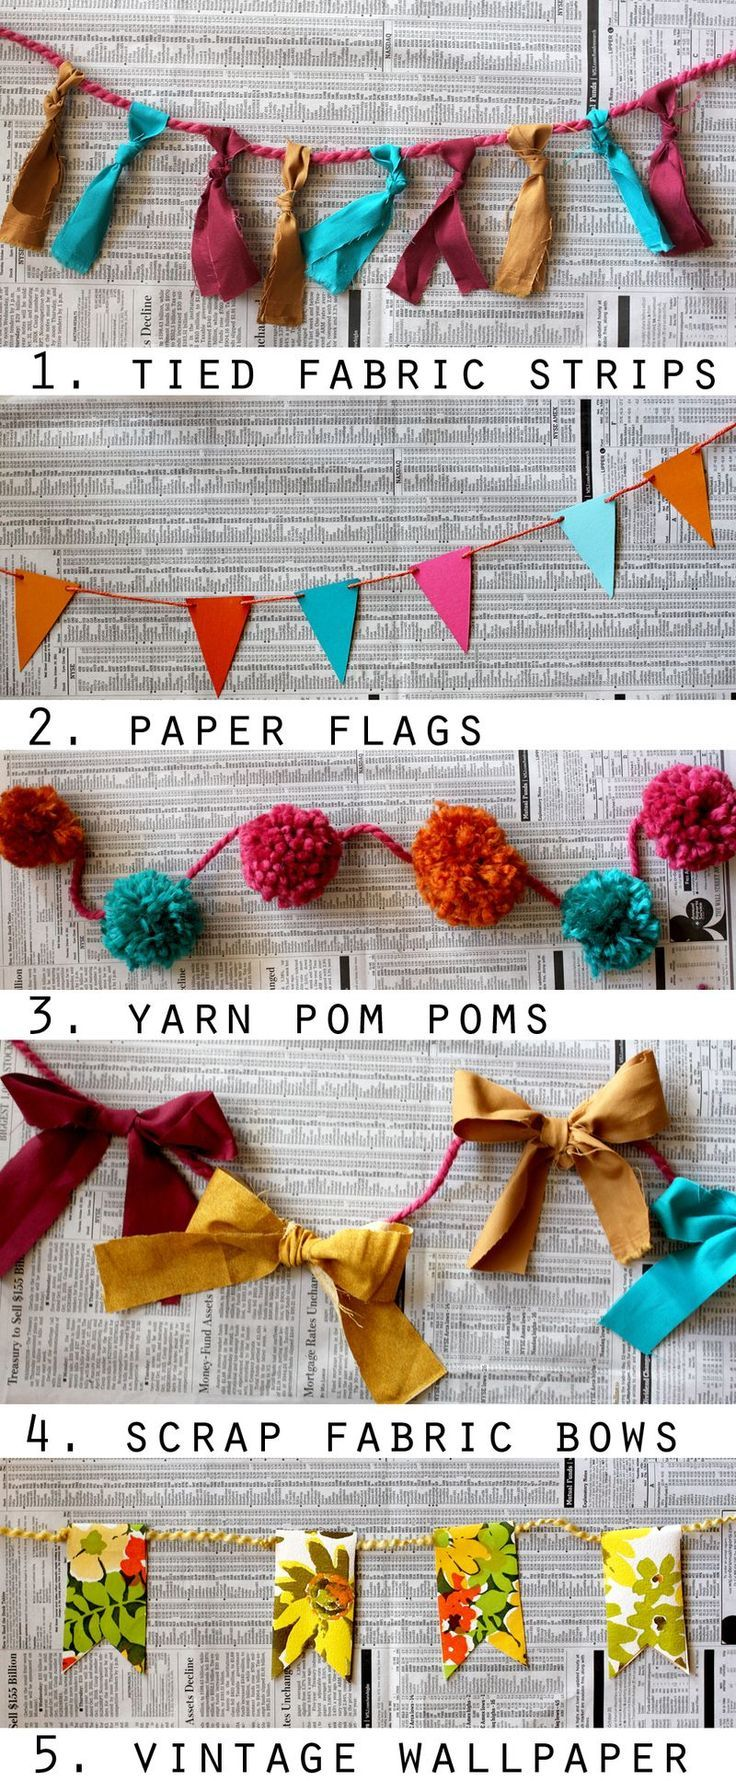 Many ways to make a garland! (I'm really pinning this to use for Bowie's birthday decorations but I don't have a board for that)